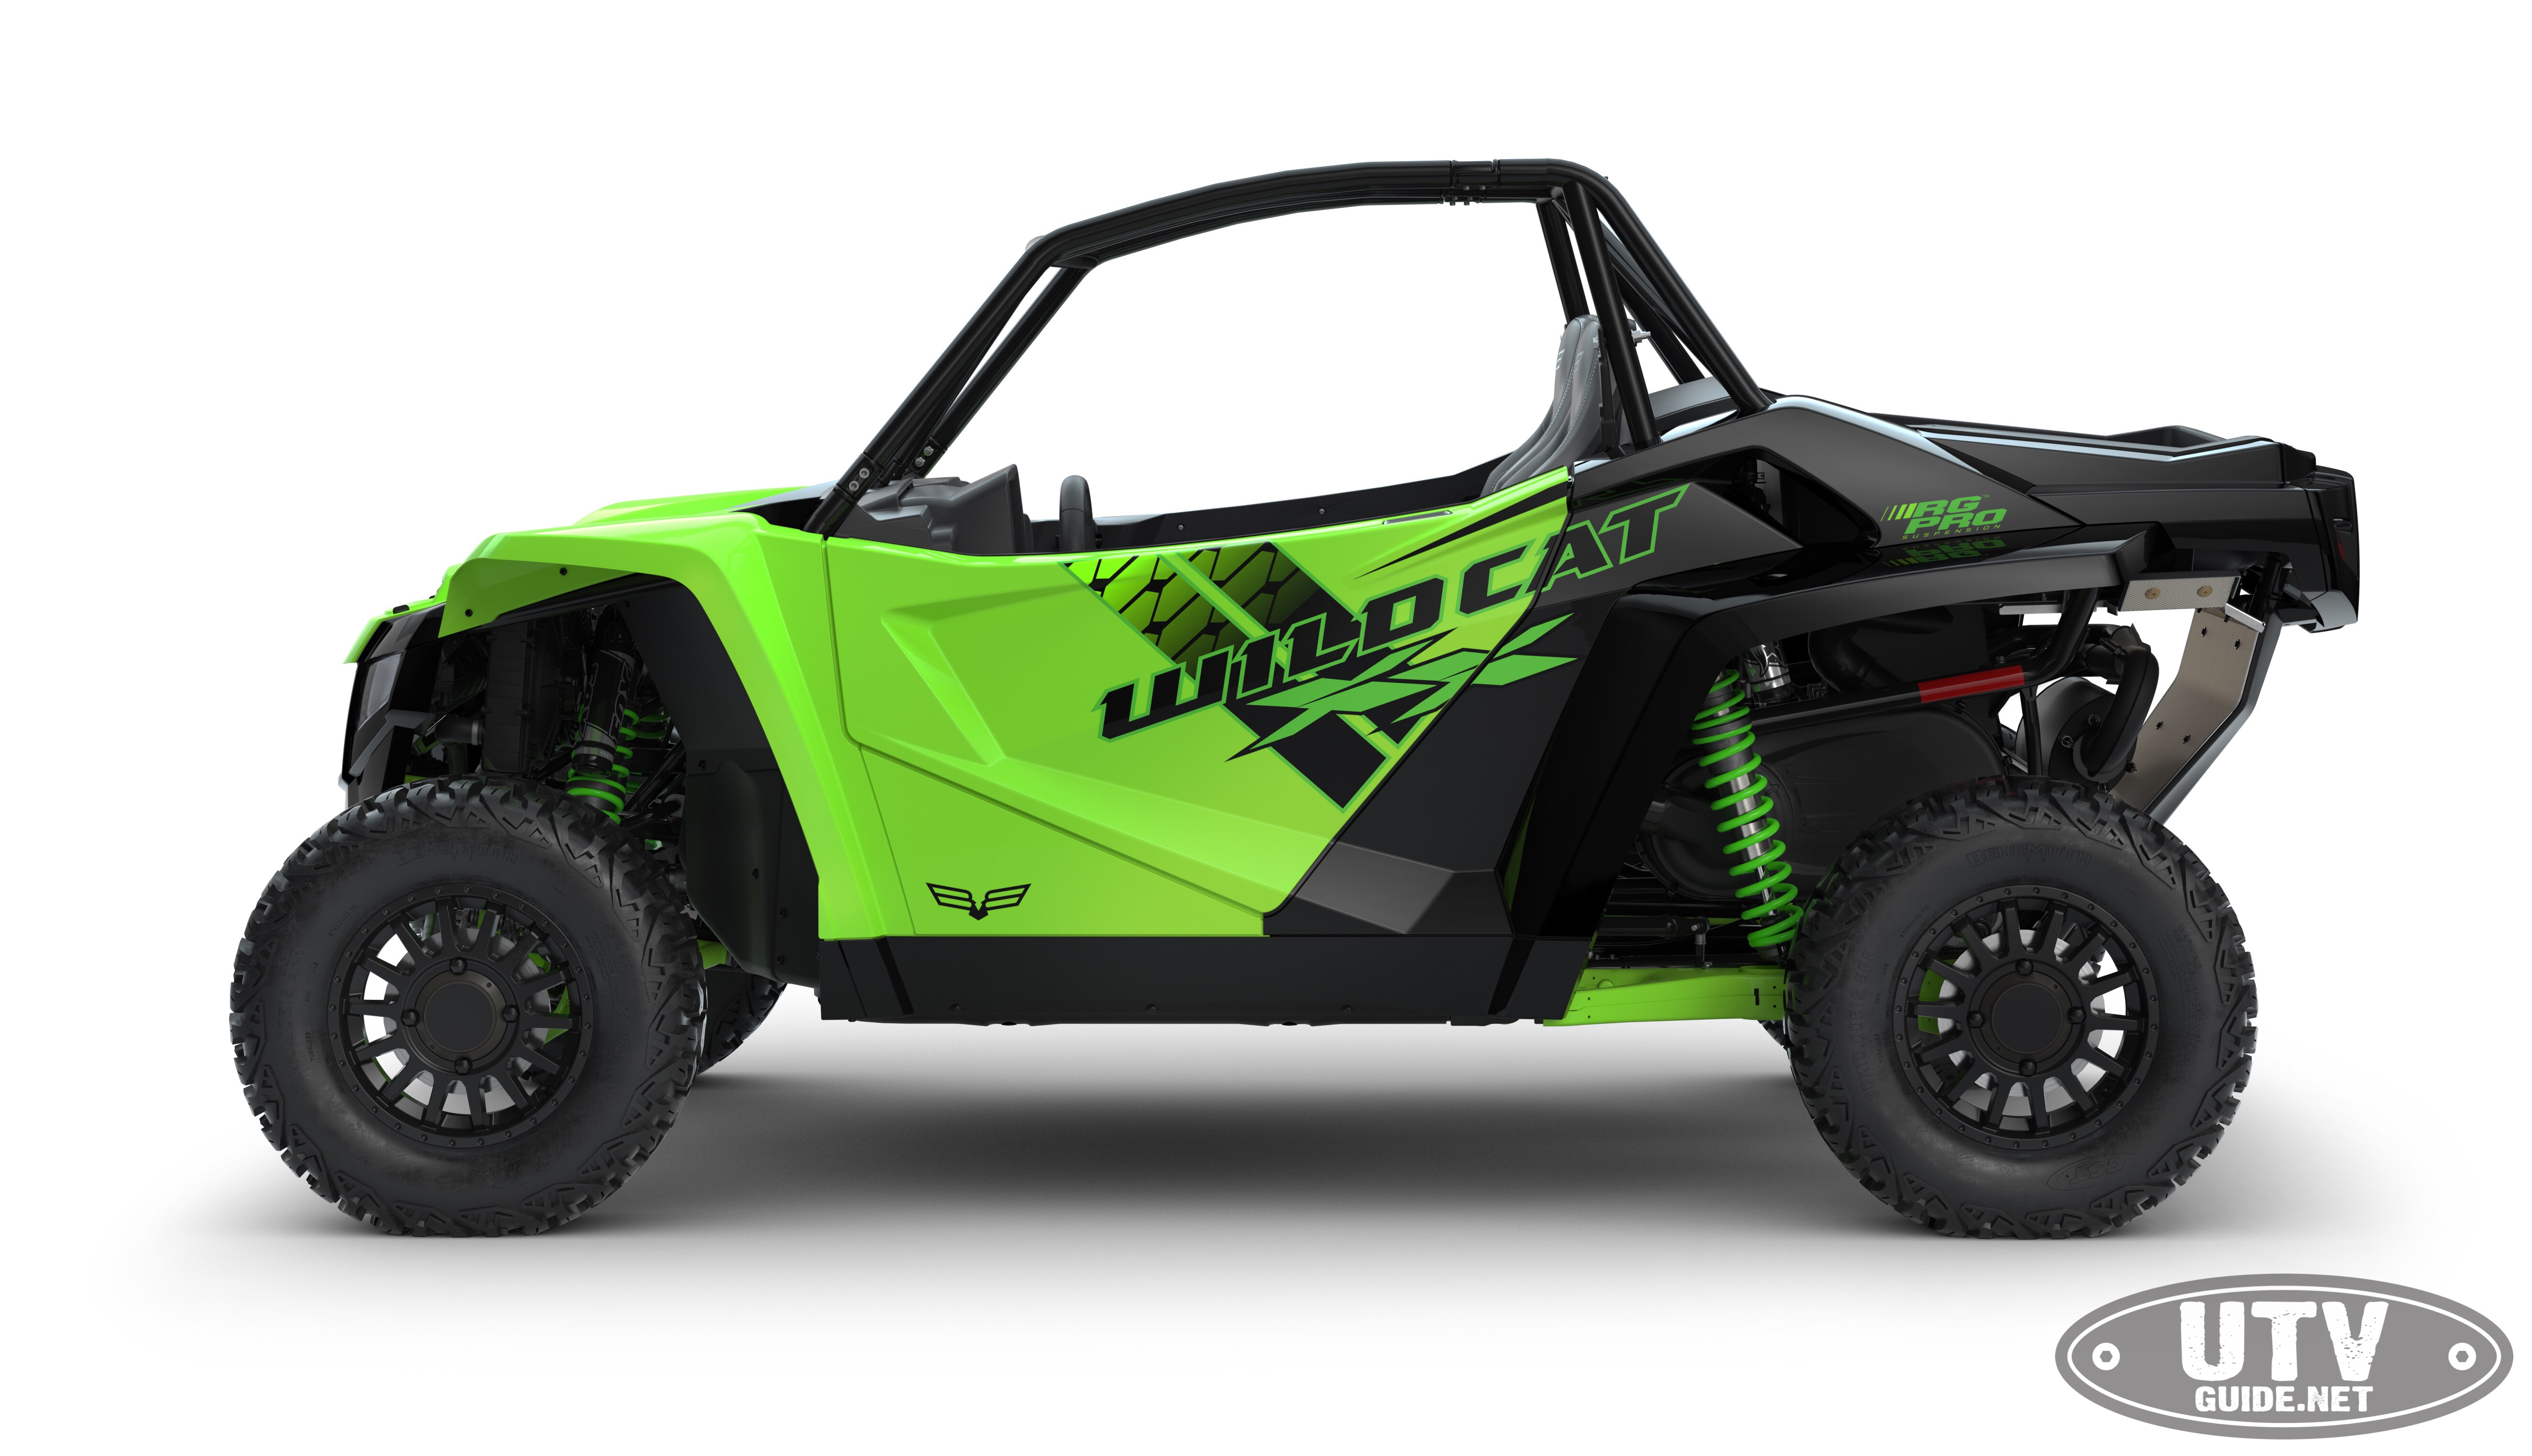 Budget Energy Top Up >> Textron Wildcat XX Review - UTV Guide